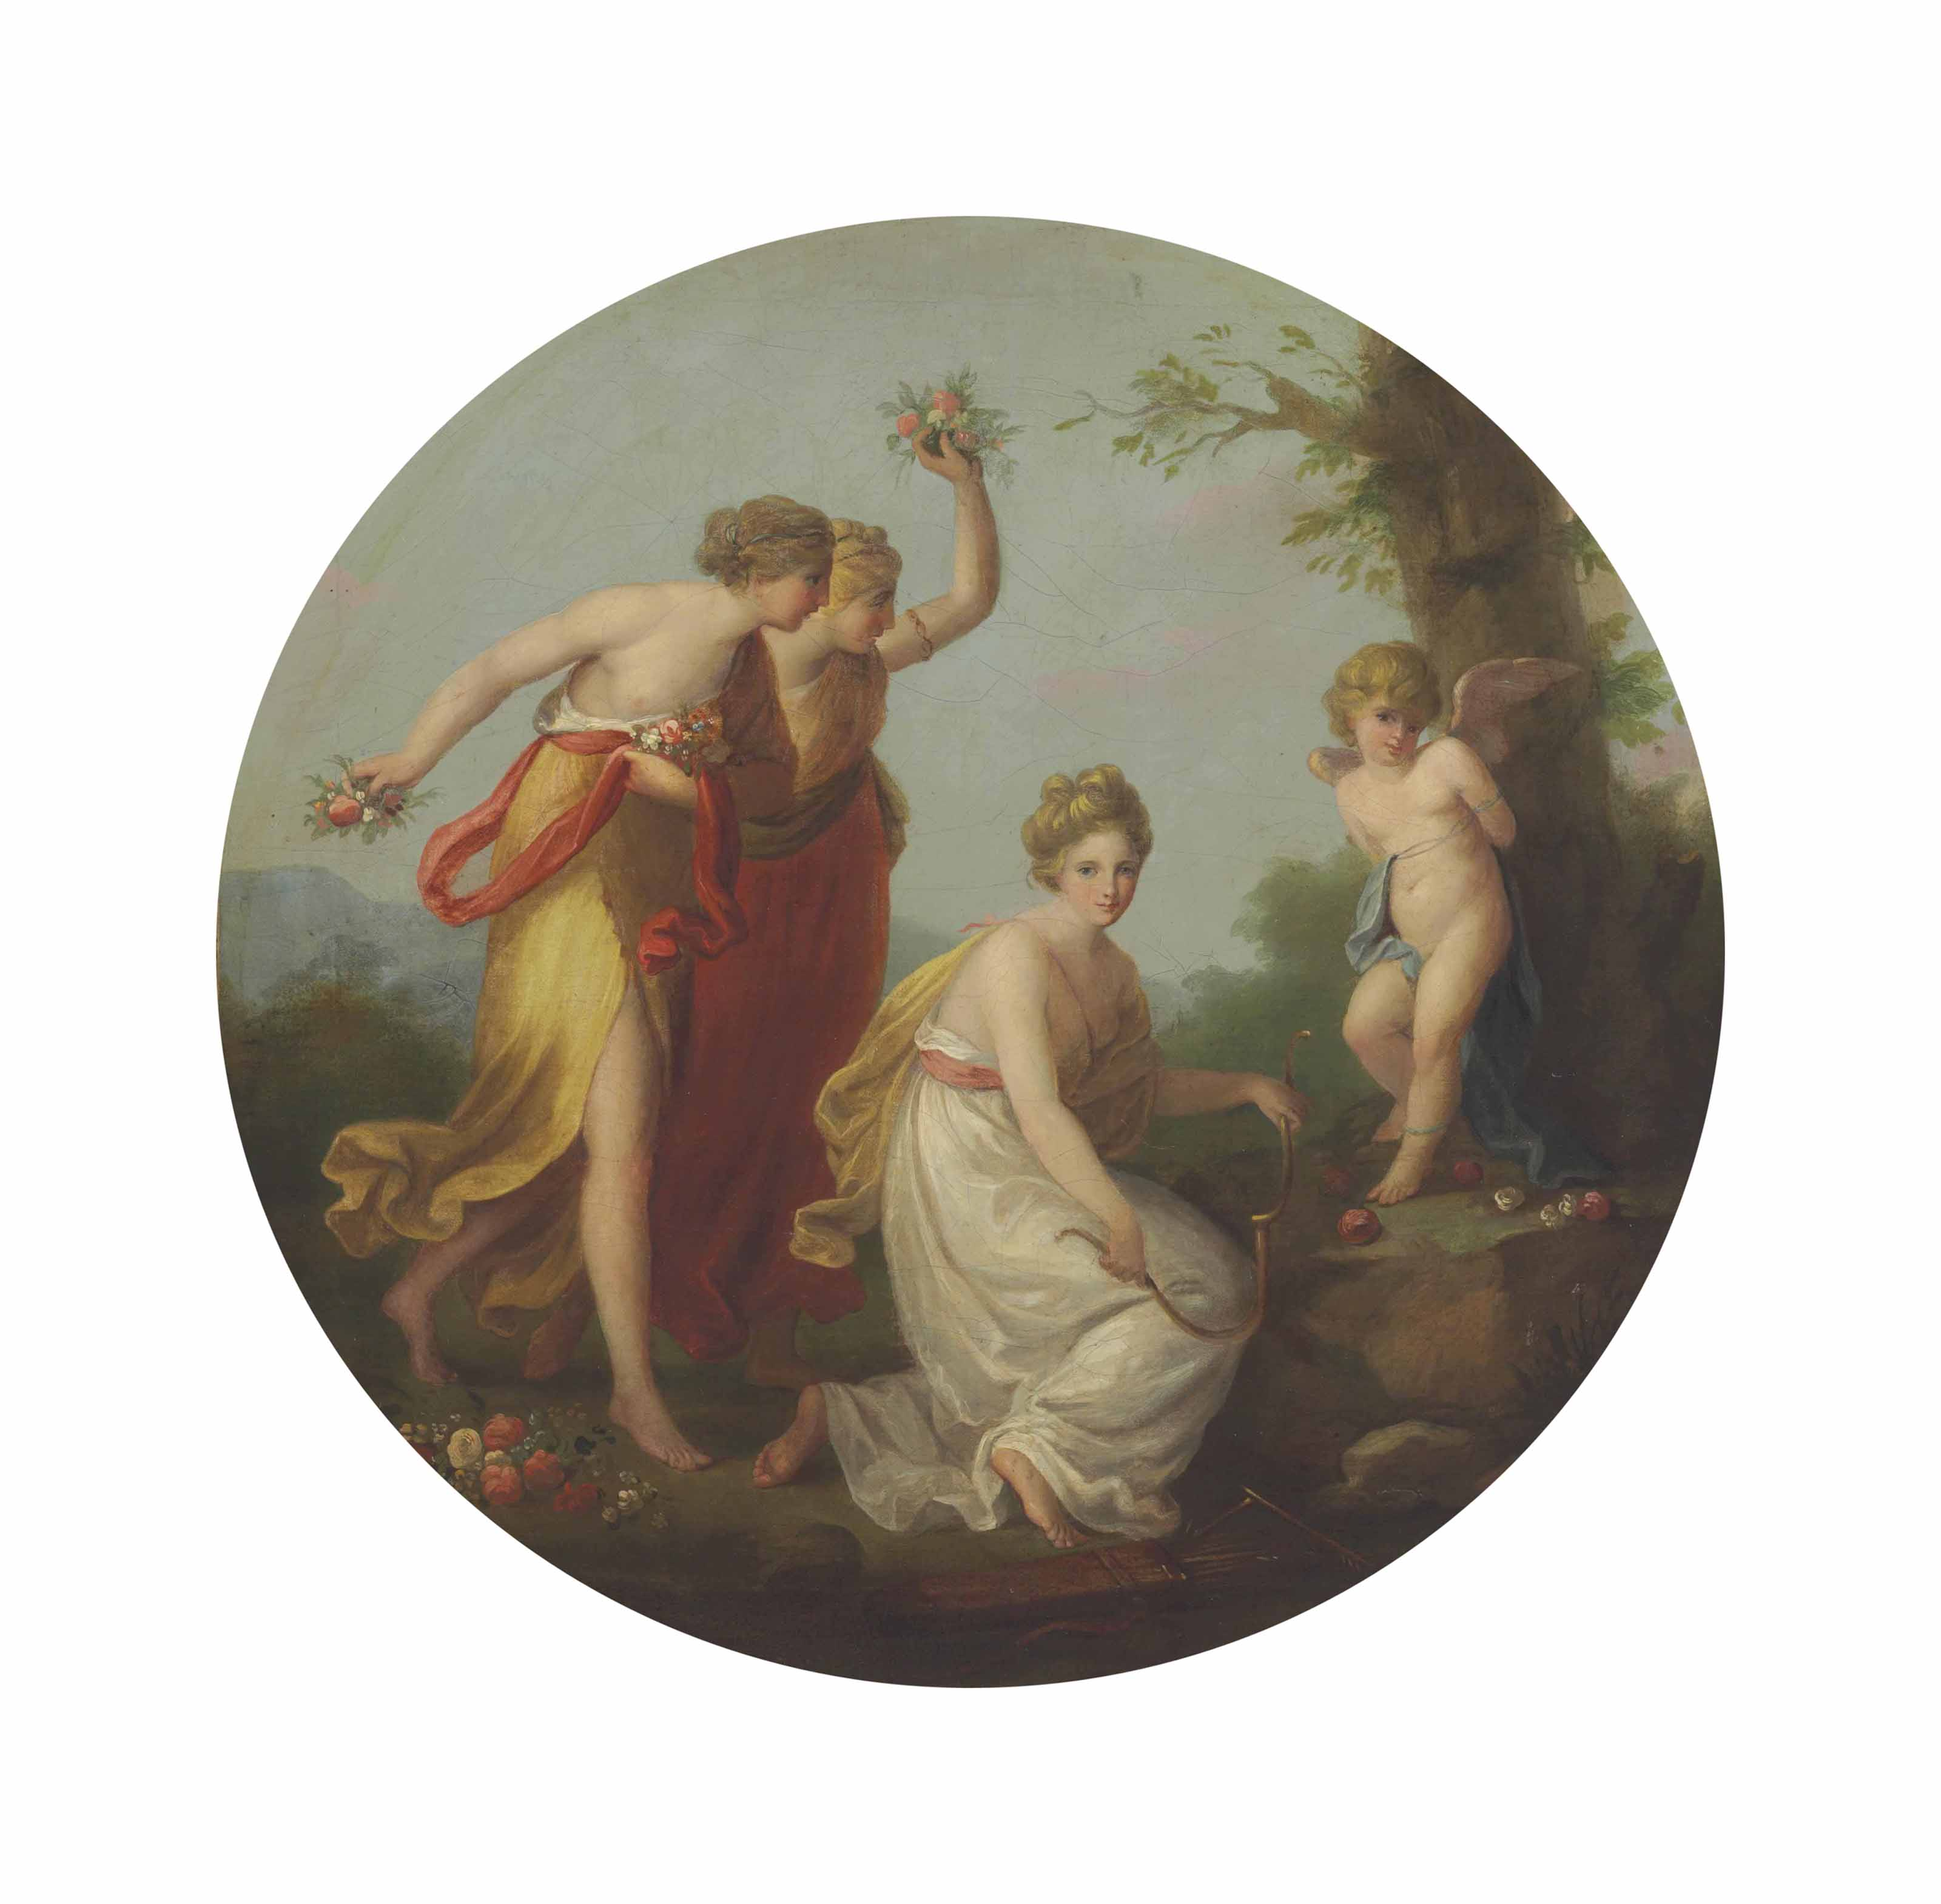 The Three Graces distressing Cupid